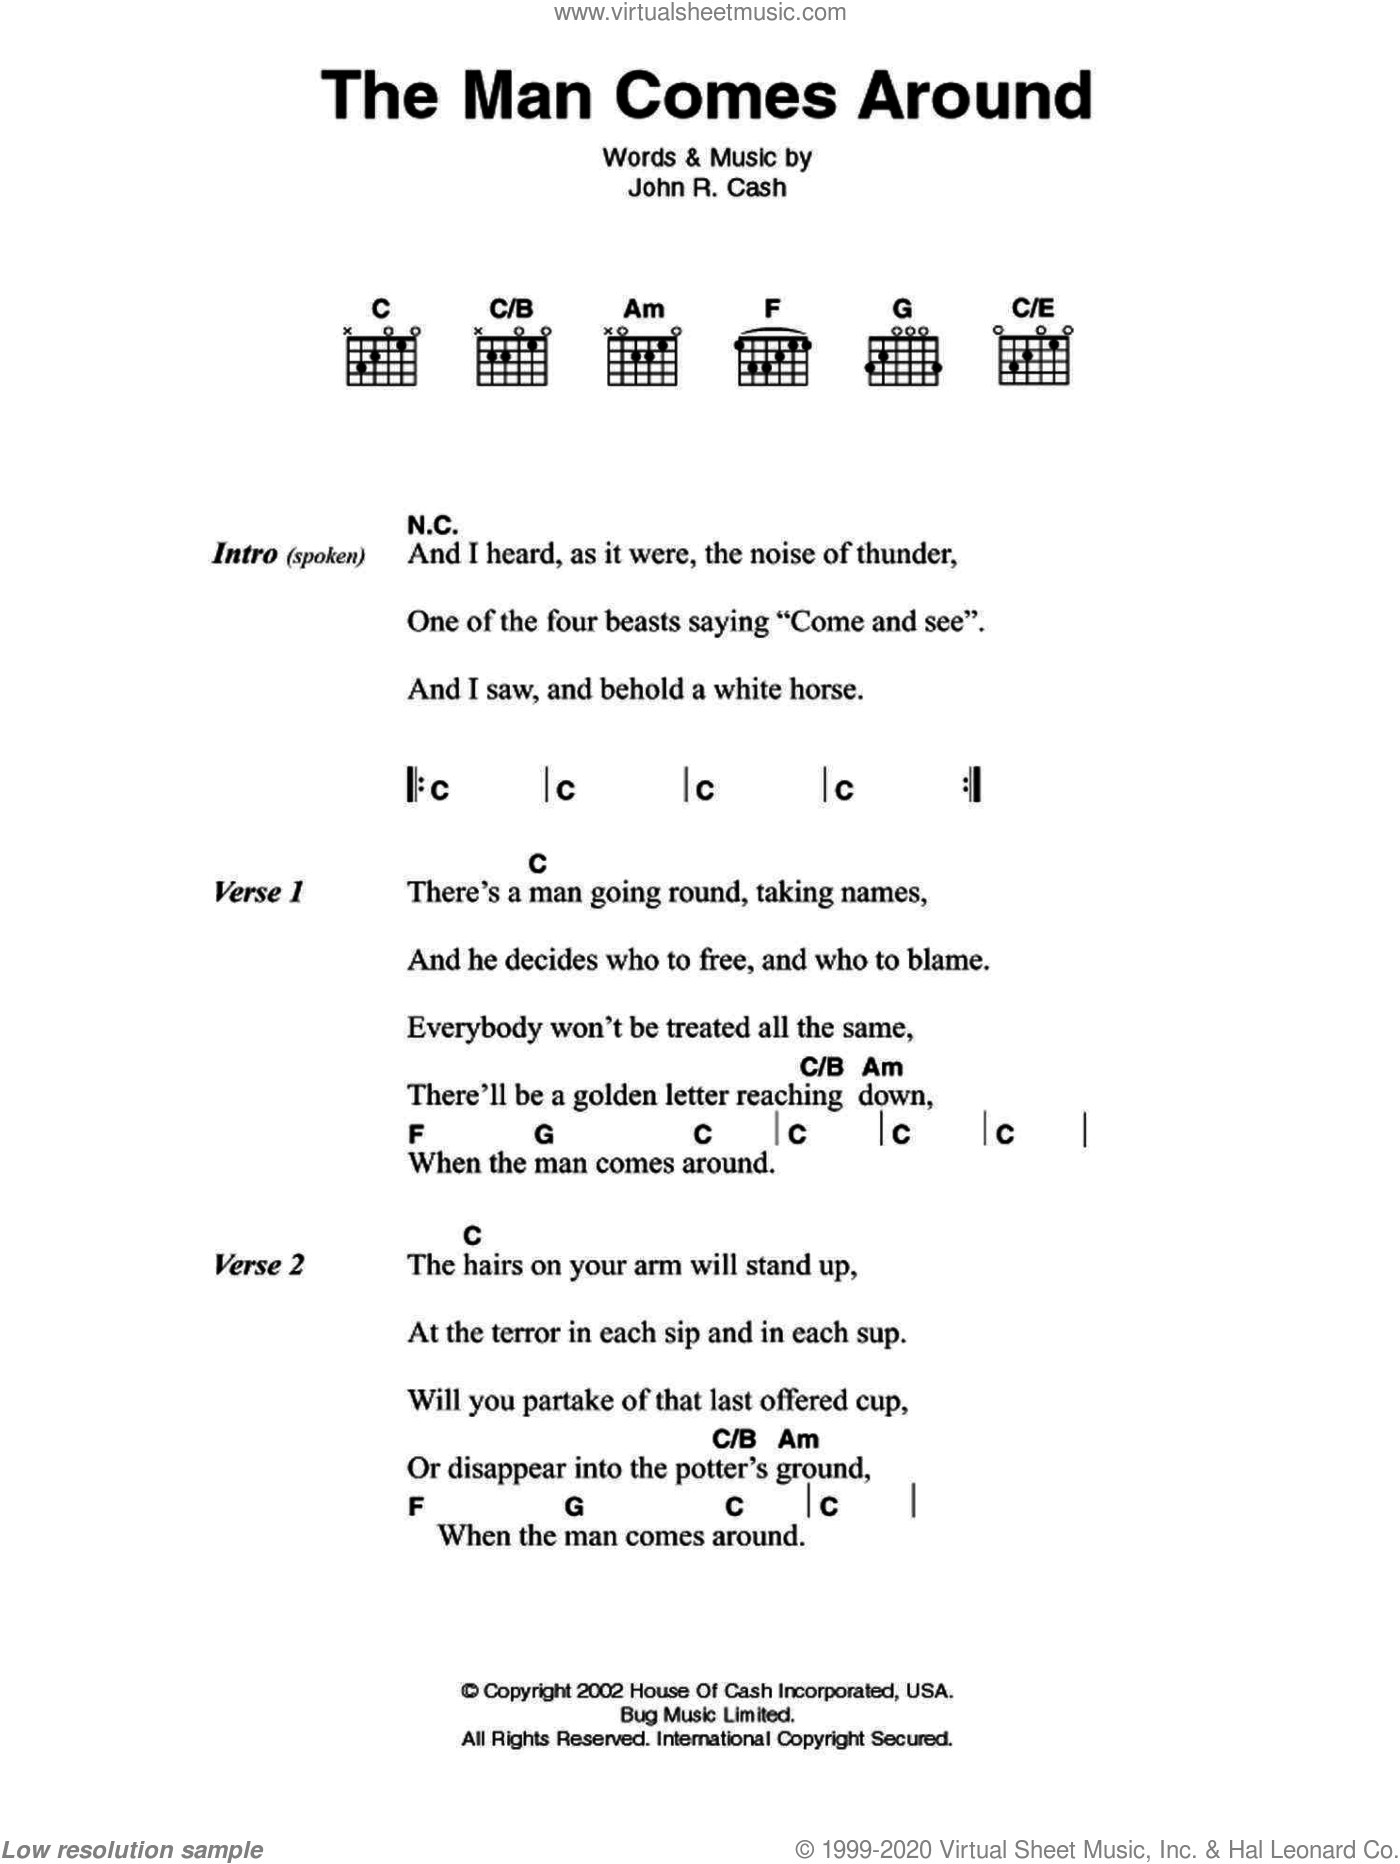 The Man Comes Around sheet music for guitar (chords, lyrics, melody) by Johnny Cash